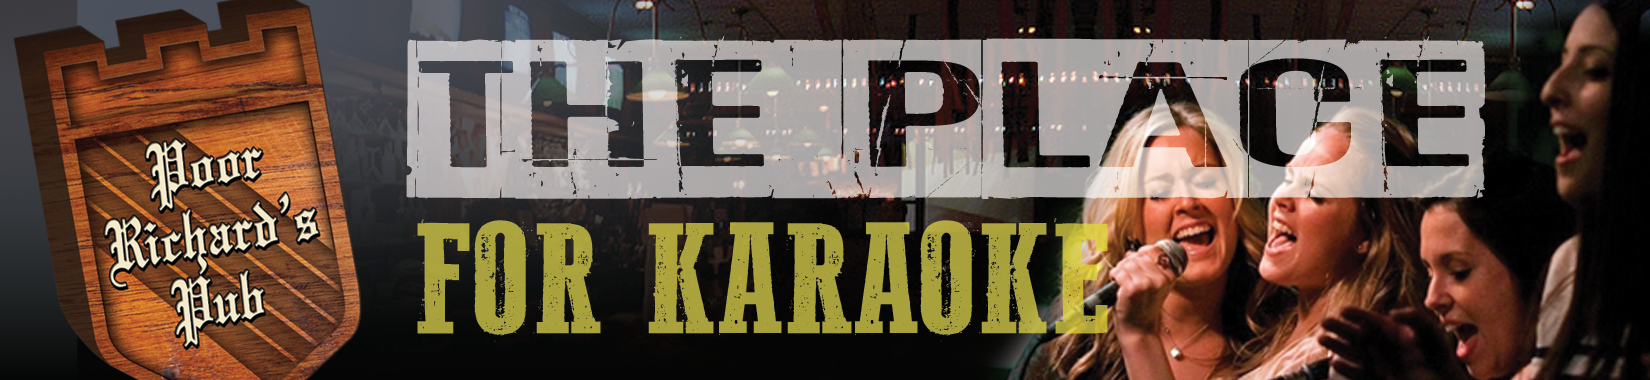 karaoke at poor richards pub